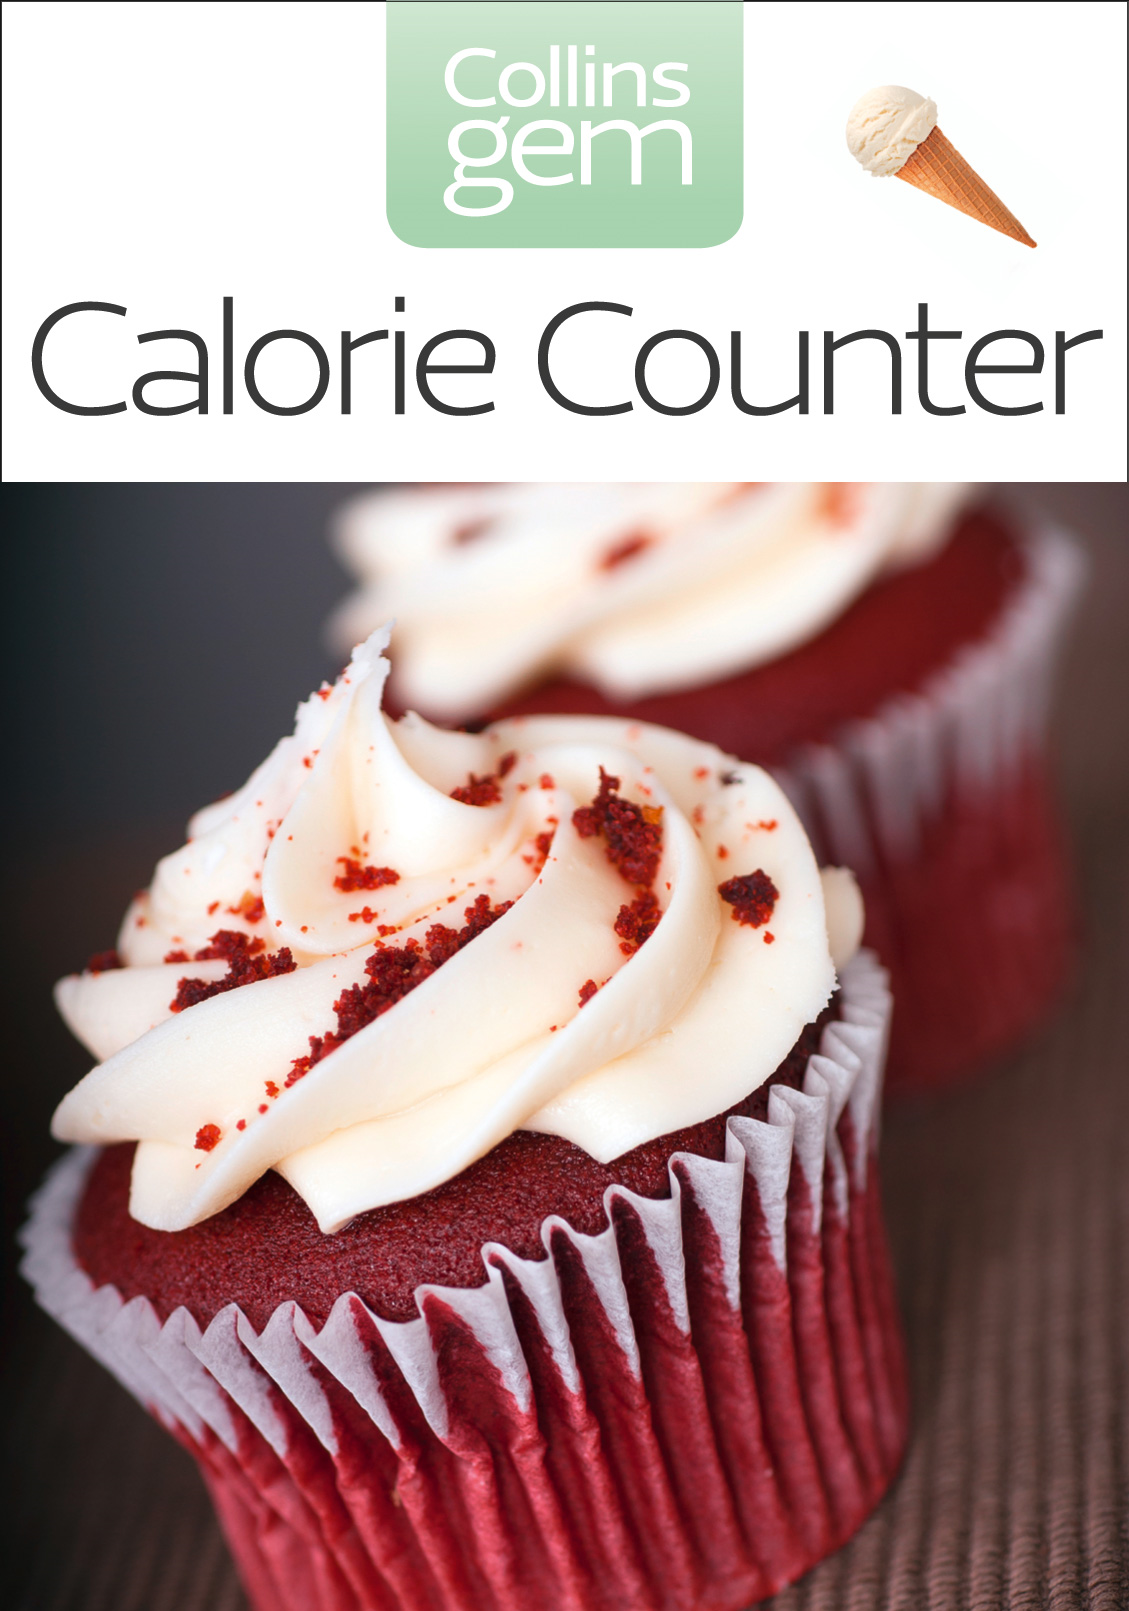 Calorie Counter (Collins Gem)